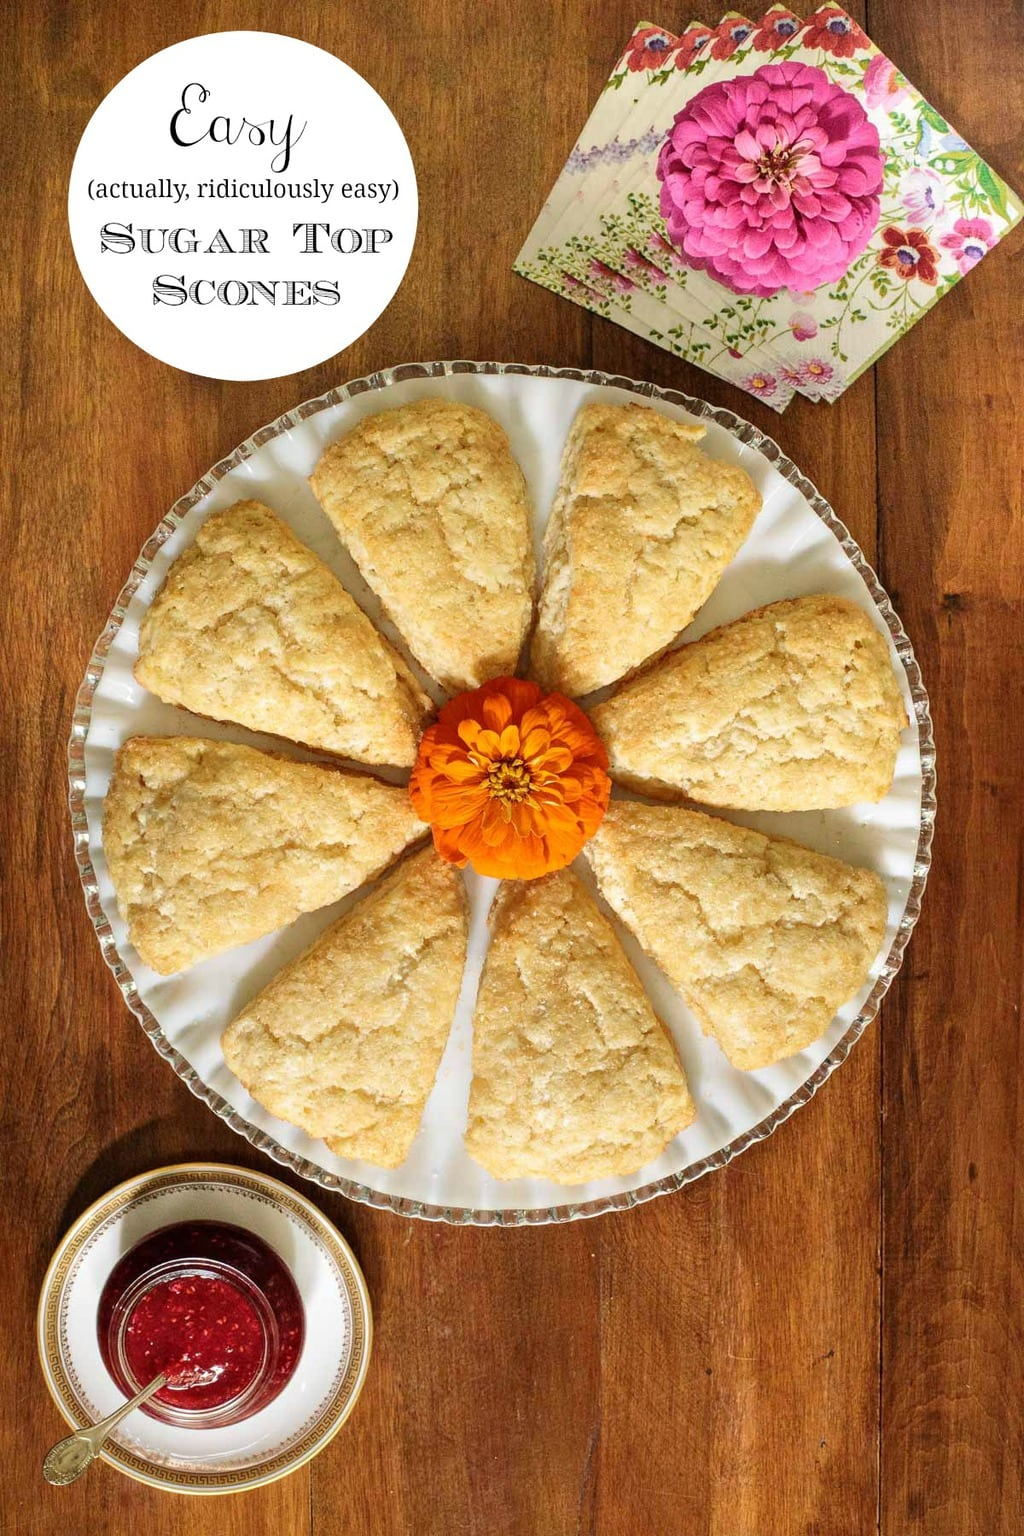 The easiest and most melt-in-your-mouth delicious scones ever! These easy sugar top scones can be made ahead and frozen (unbaked) for fuss-free entertaining too! #easyscones, #plainscones, #freezingscones, #howtomakescones